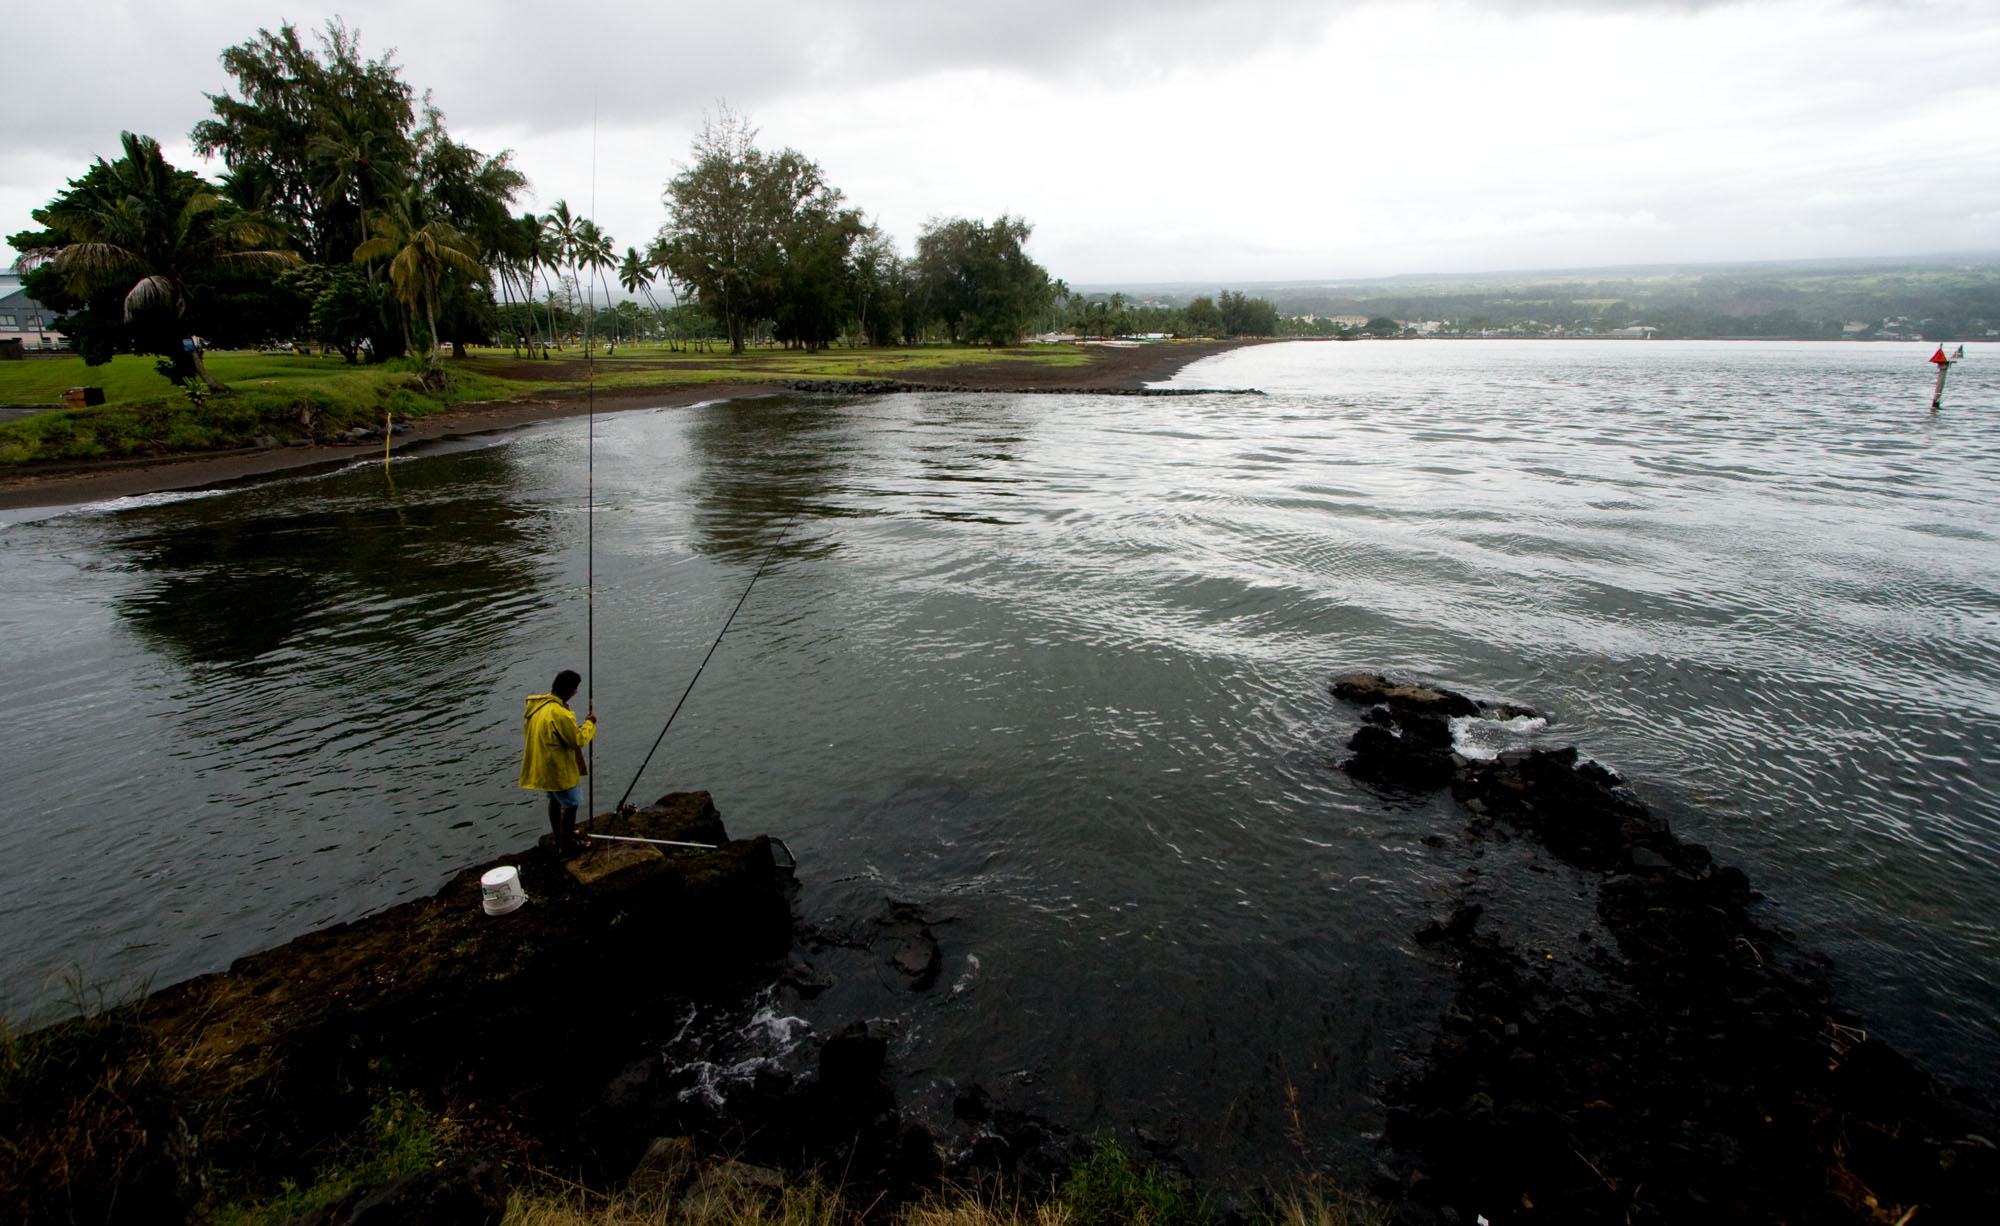 National Weather Service warns of possible sea level changes and strong currents along the coast starting at 7 p.m. in Hawaii (Oct 7).